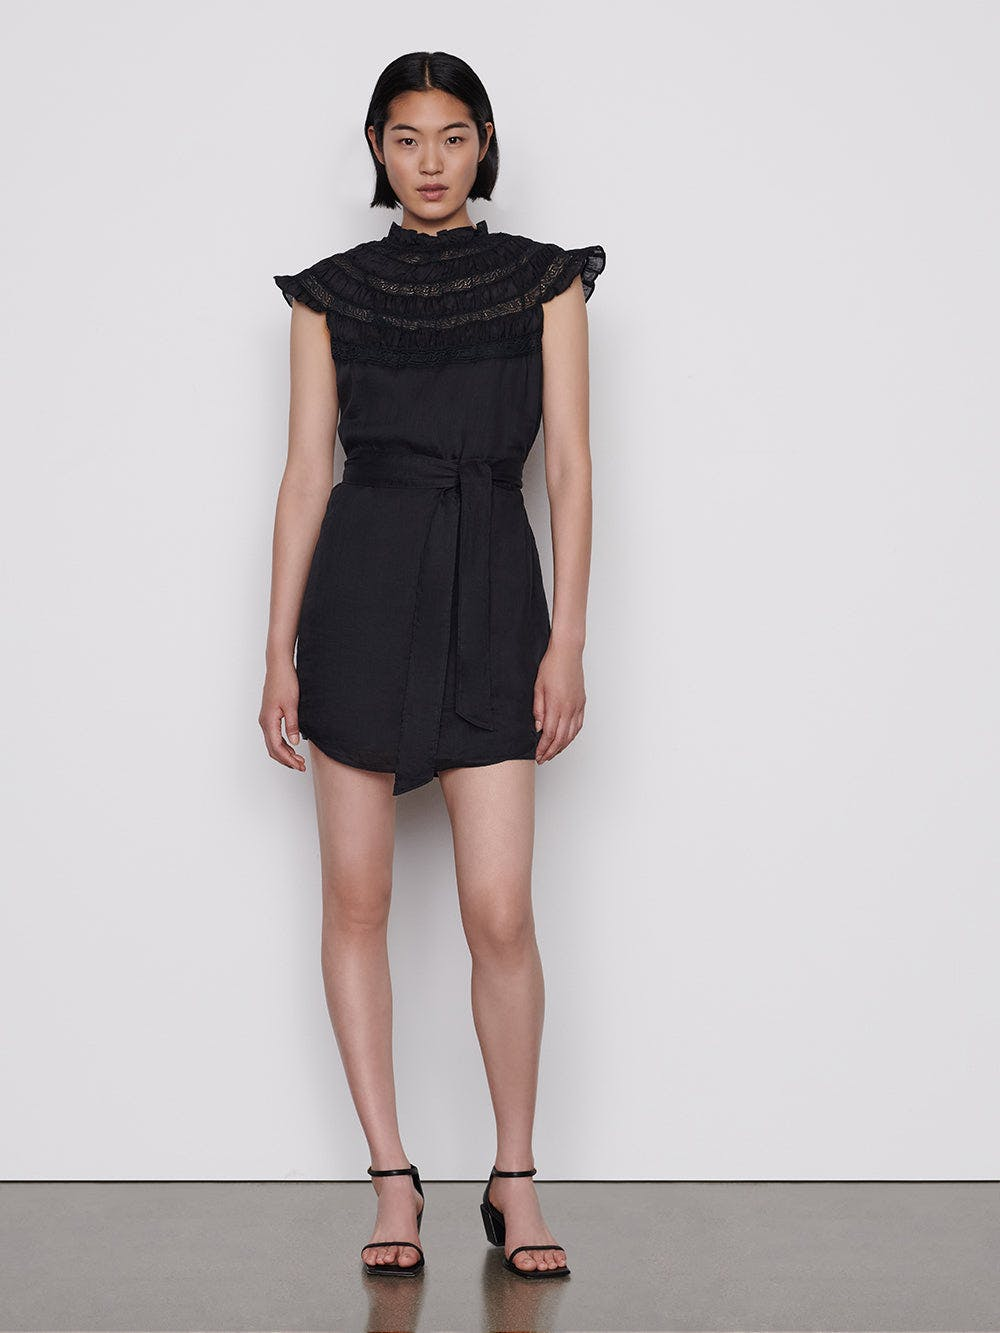 dress front view